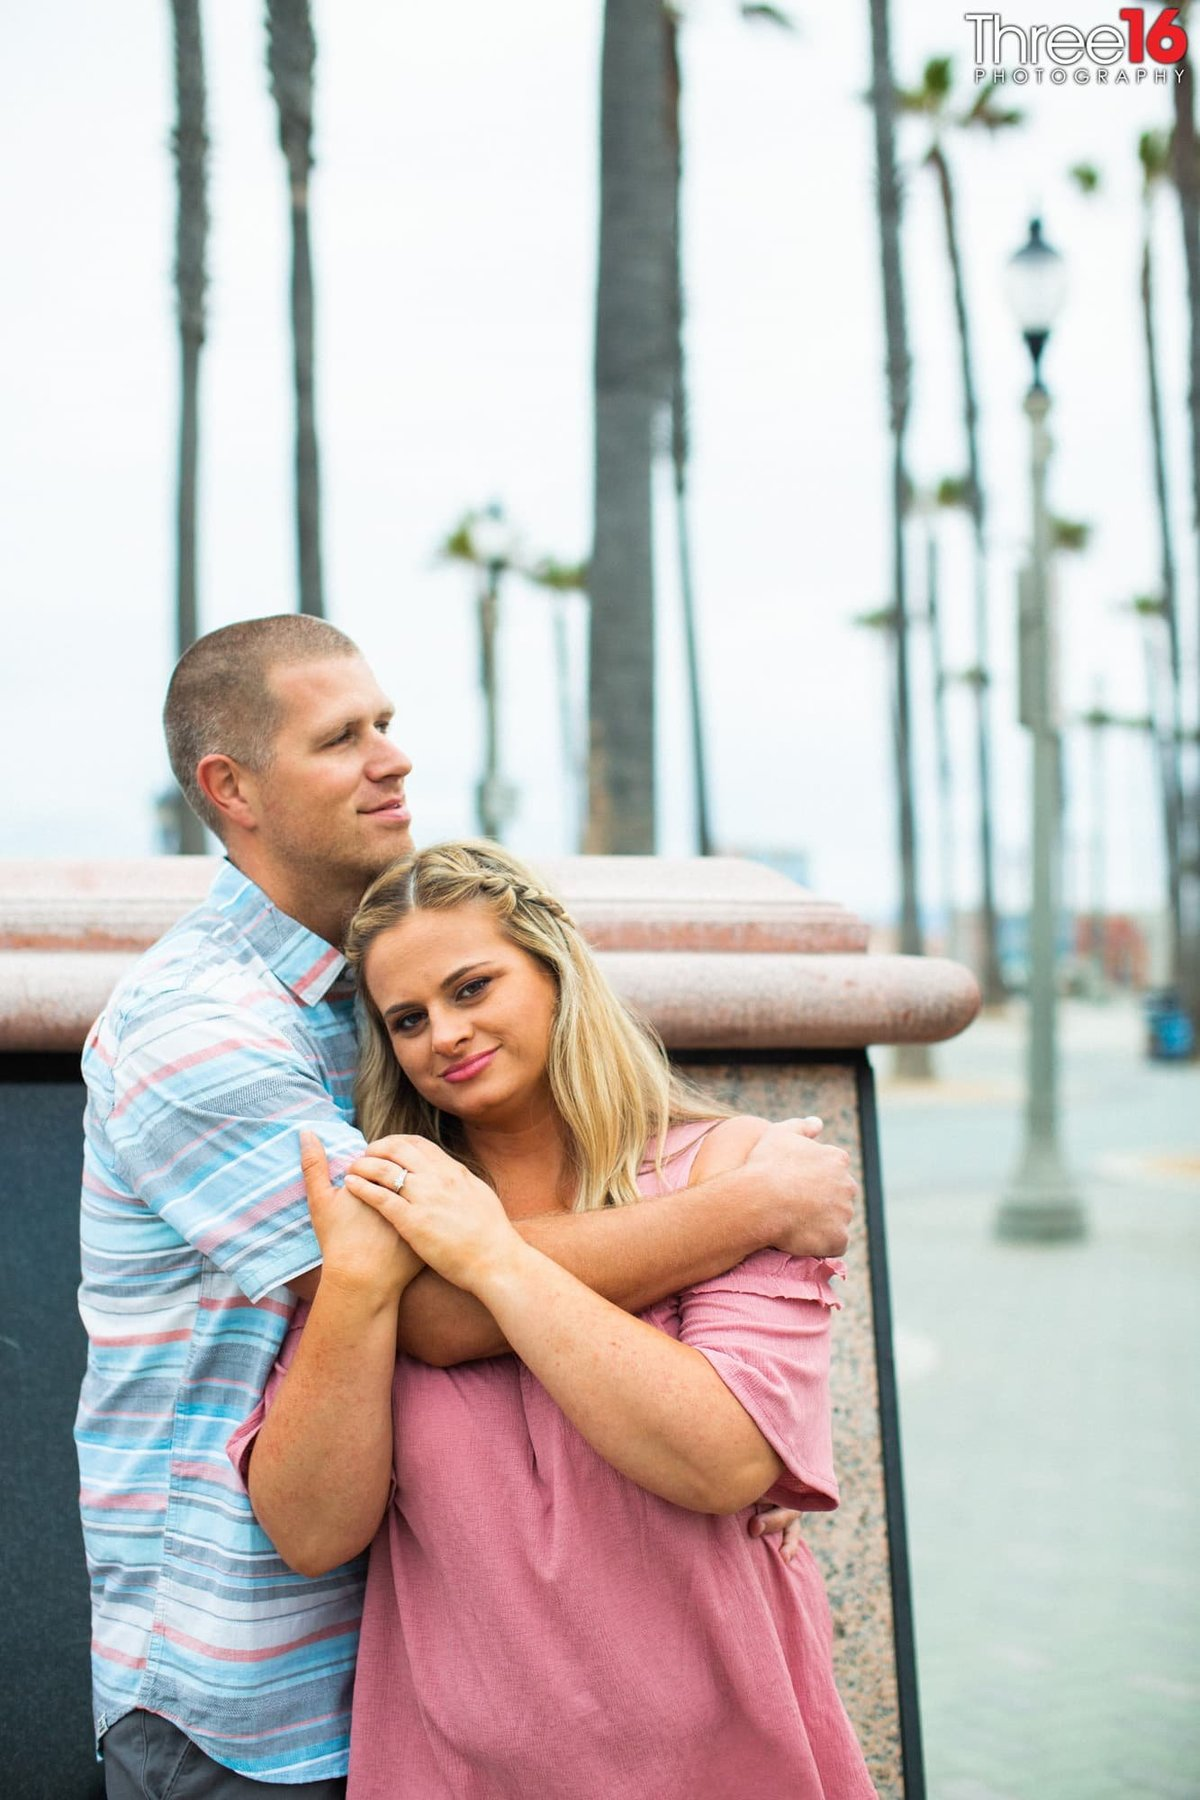 Huntington Beach Pier Engagement Photos Huntington